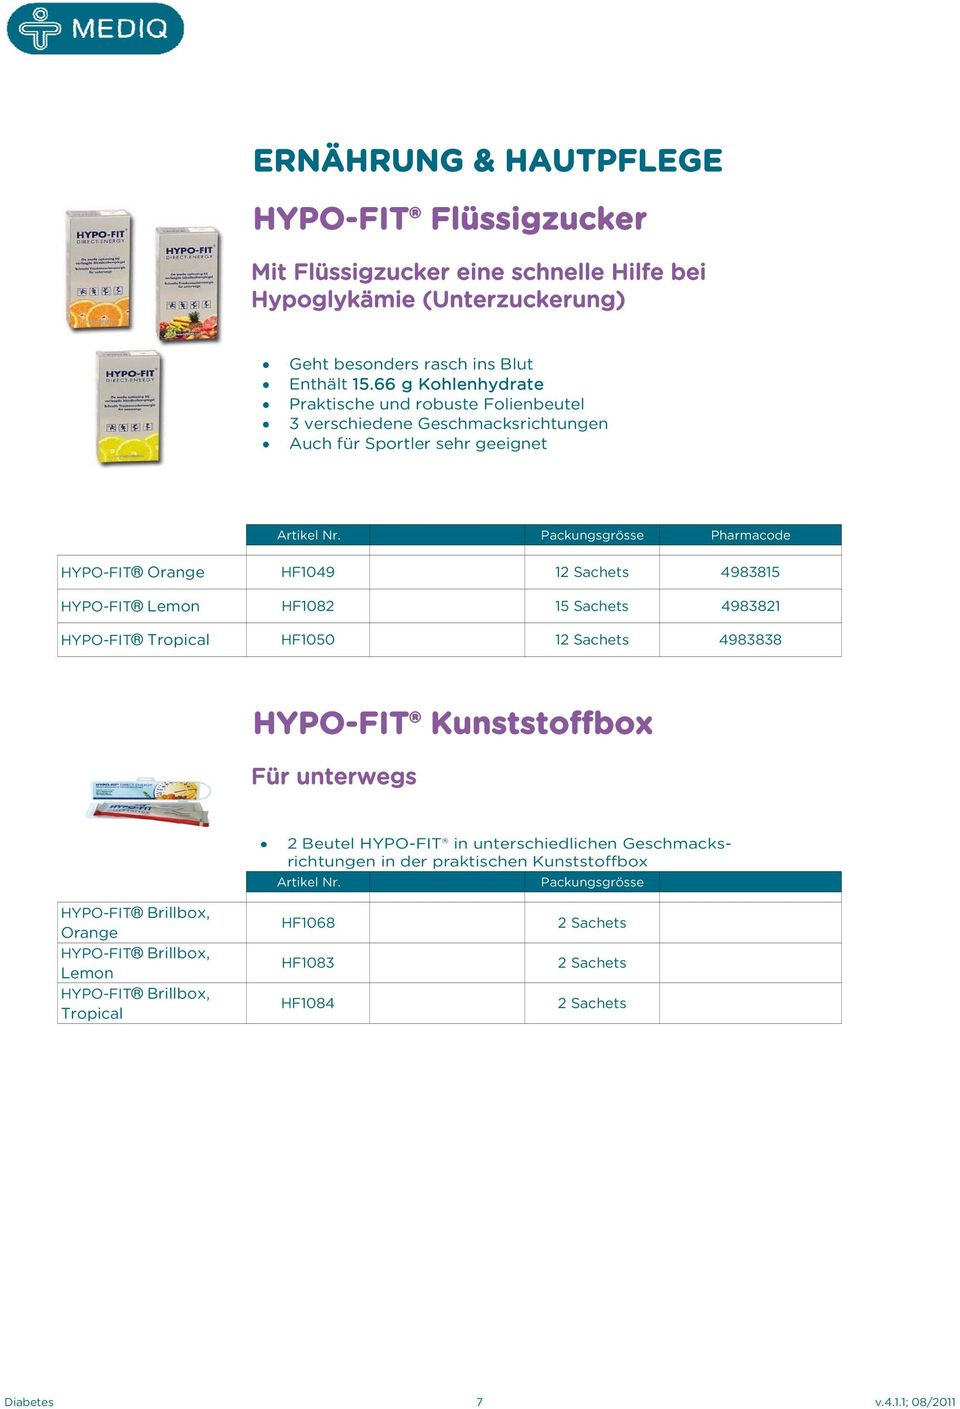 Packungsgrösse Pharmacode HYPO-FIT Orange HF1049 12 Sachets 4983815 HYPO-FIT Lemon HF1082 15 Sachets 4983821 HYPO-FIT Tropical HF1050 12 Sachets 4983838 HYPO-FIT Kunststoffbox Für unterwegs